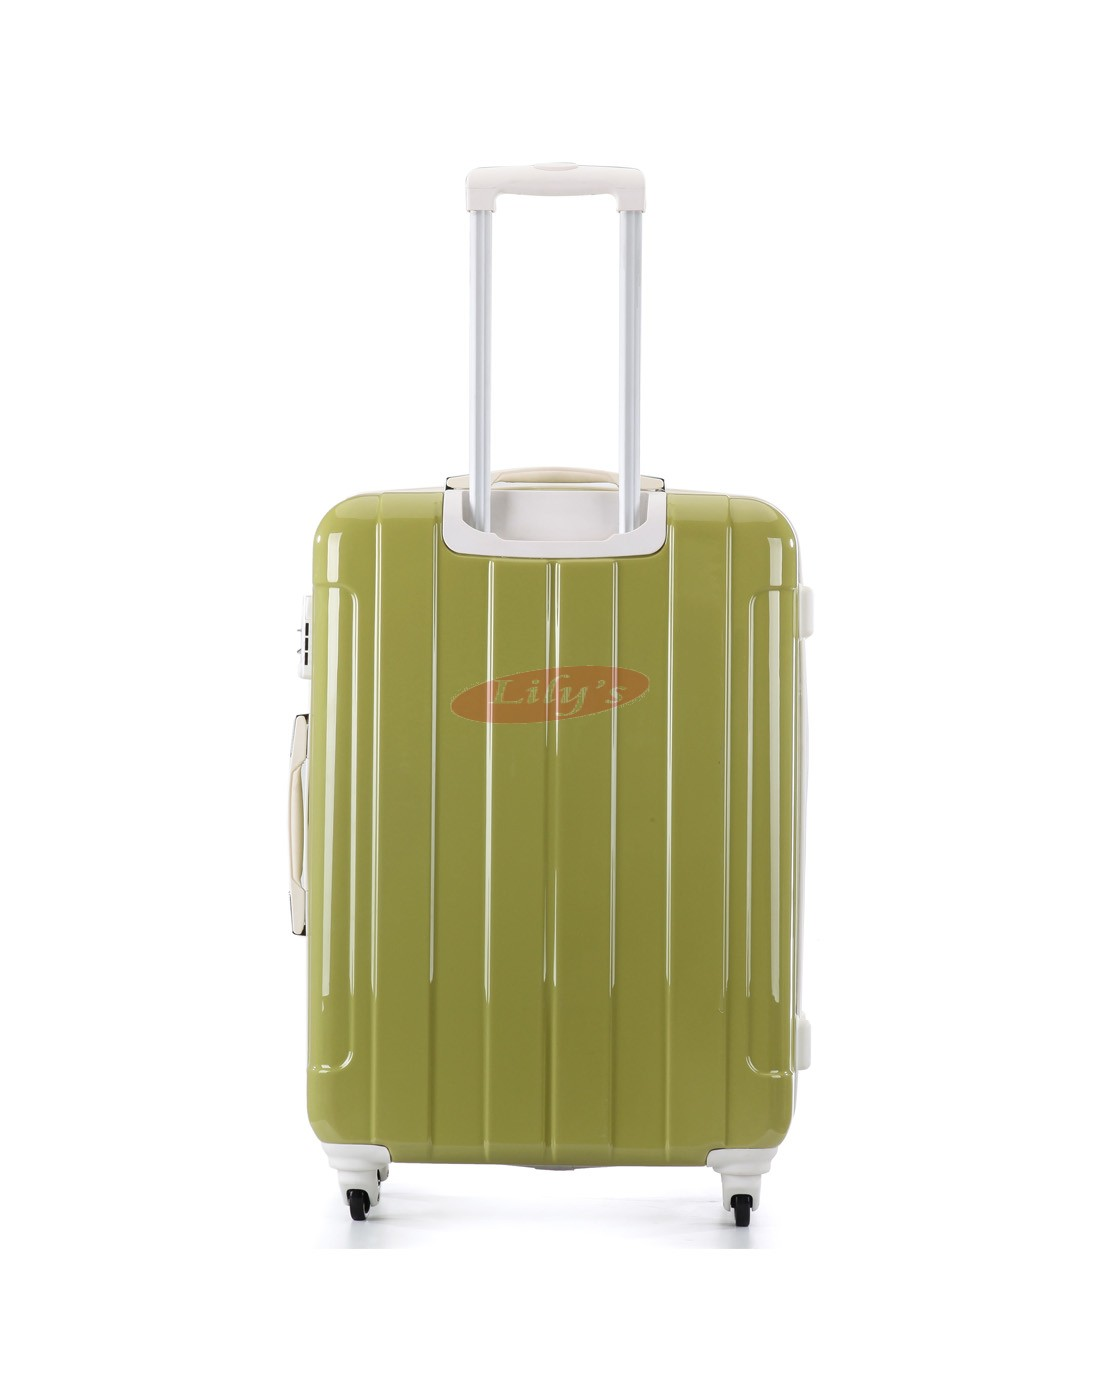 AIRCROSS Luggage A56 Green Hard Case Trolley Luggage -24""